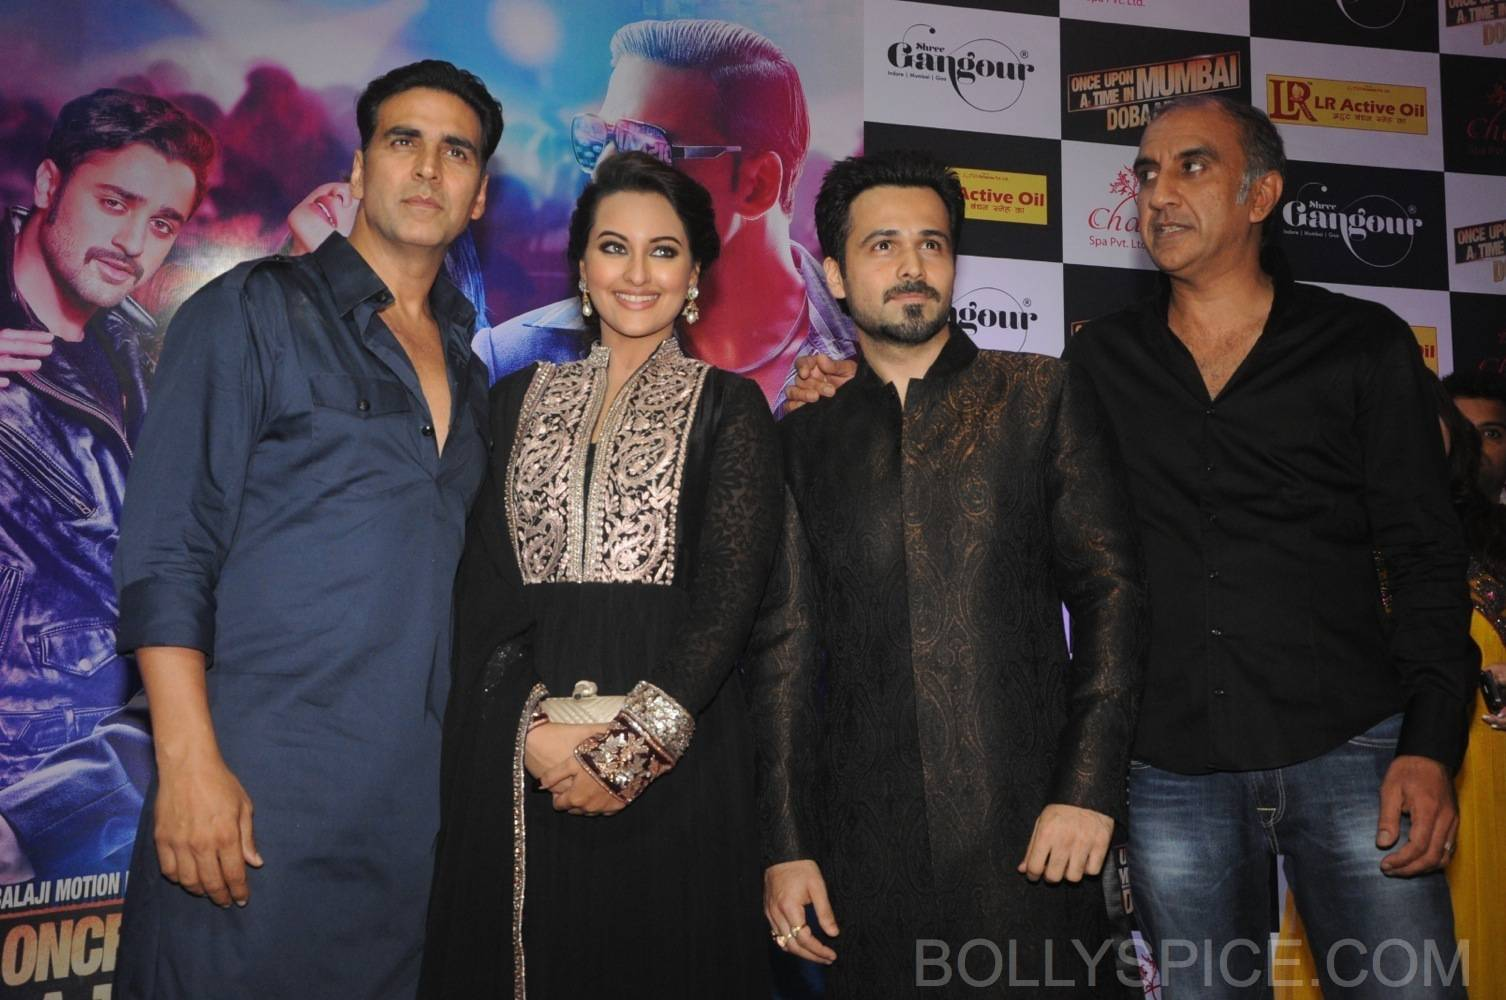 ouatimdiftaarparty44 IN PICTURES: Celebs at the Once Upon A Time in Mumbai Dobaara Iftaar Party